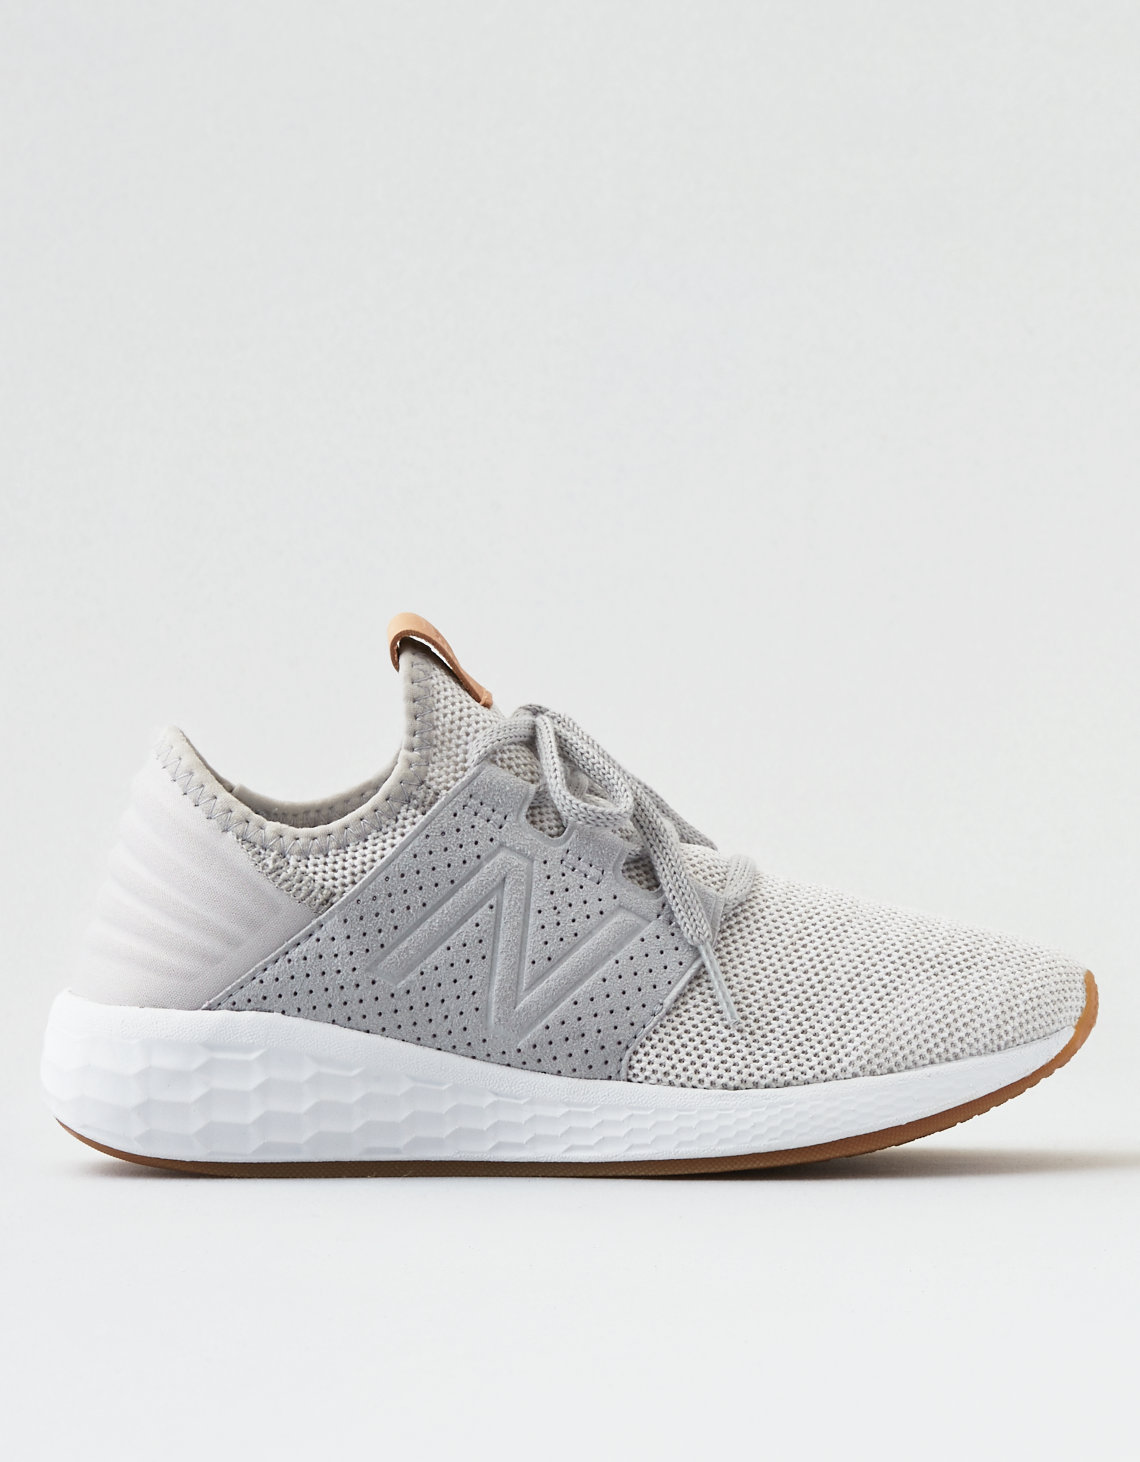 af33a306cb63 New Balance Fresh Foam Cruz V2 Knit Sneaker. Placeholder image. Product  Image